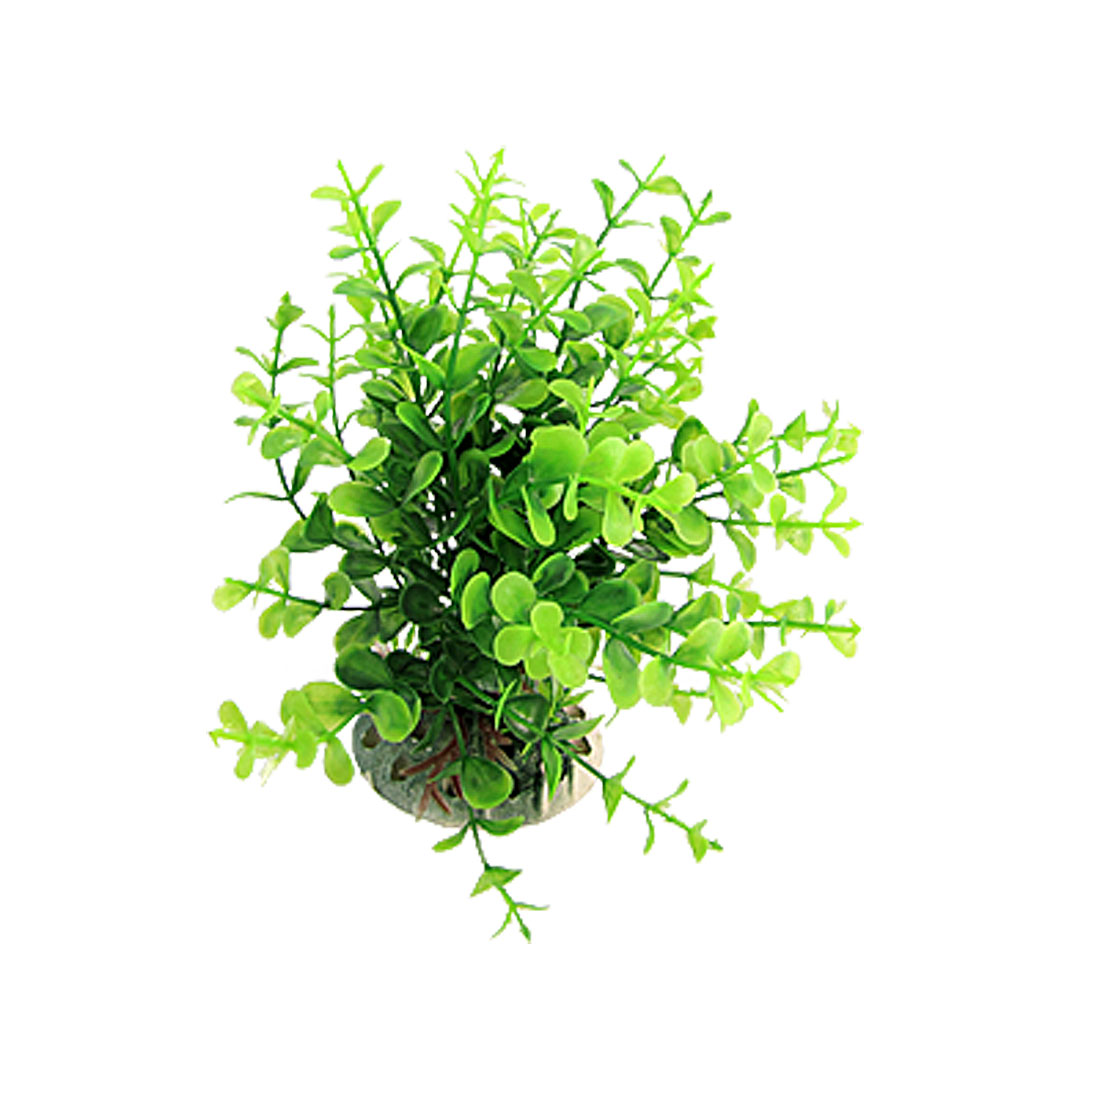 Green Plastic Float Grass Ornament Decor for Fish Tank Aquarium